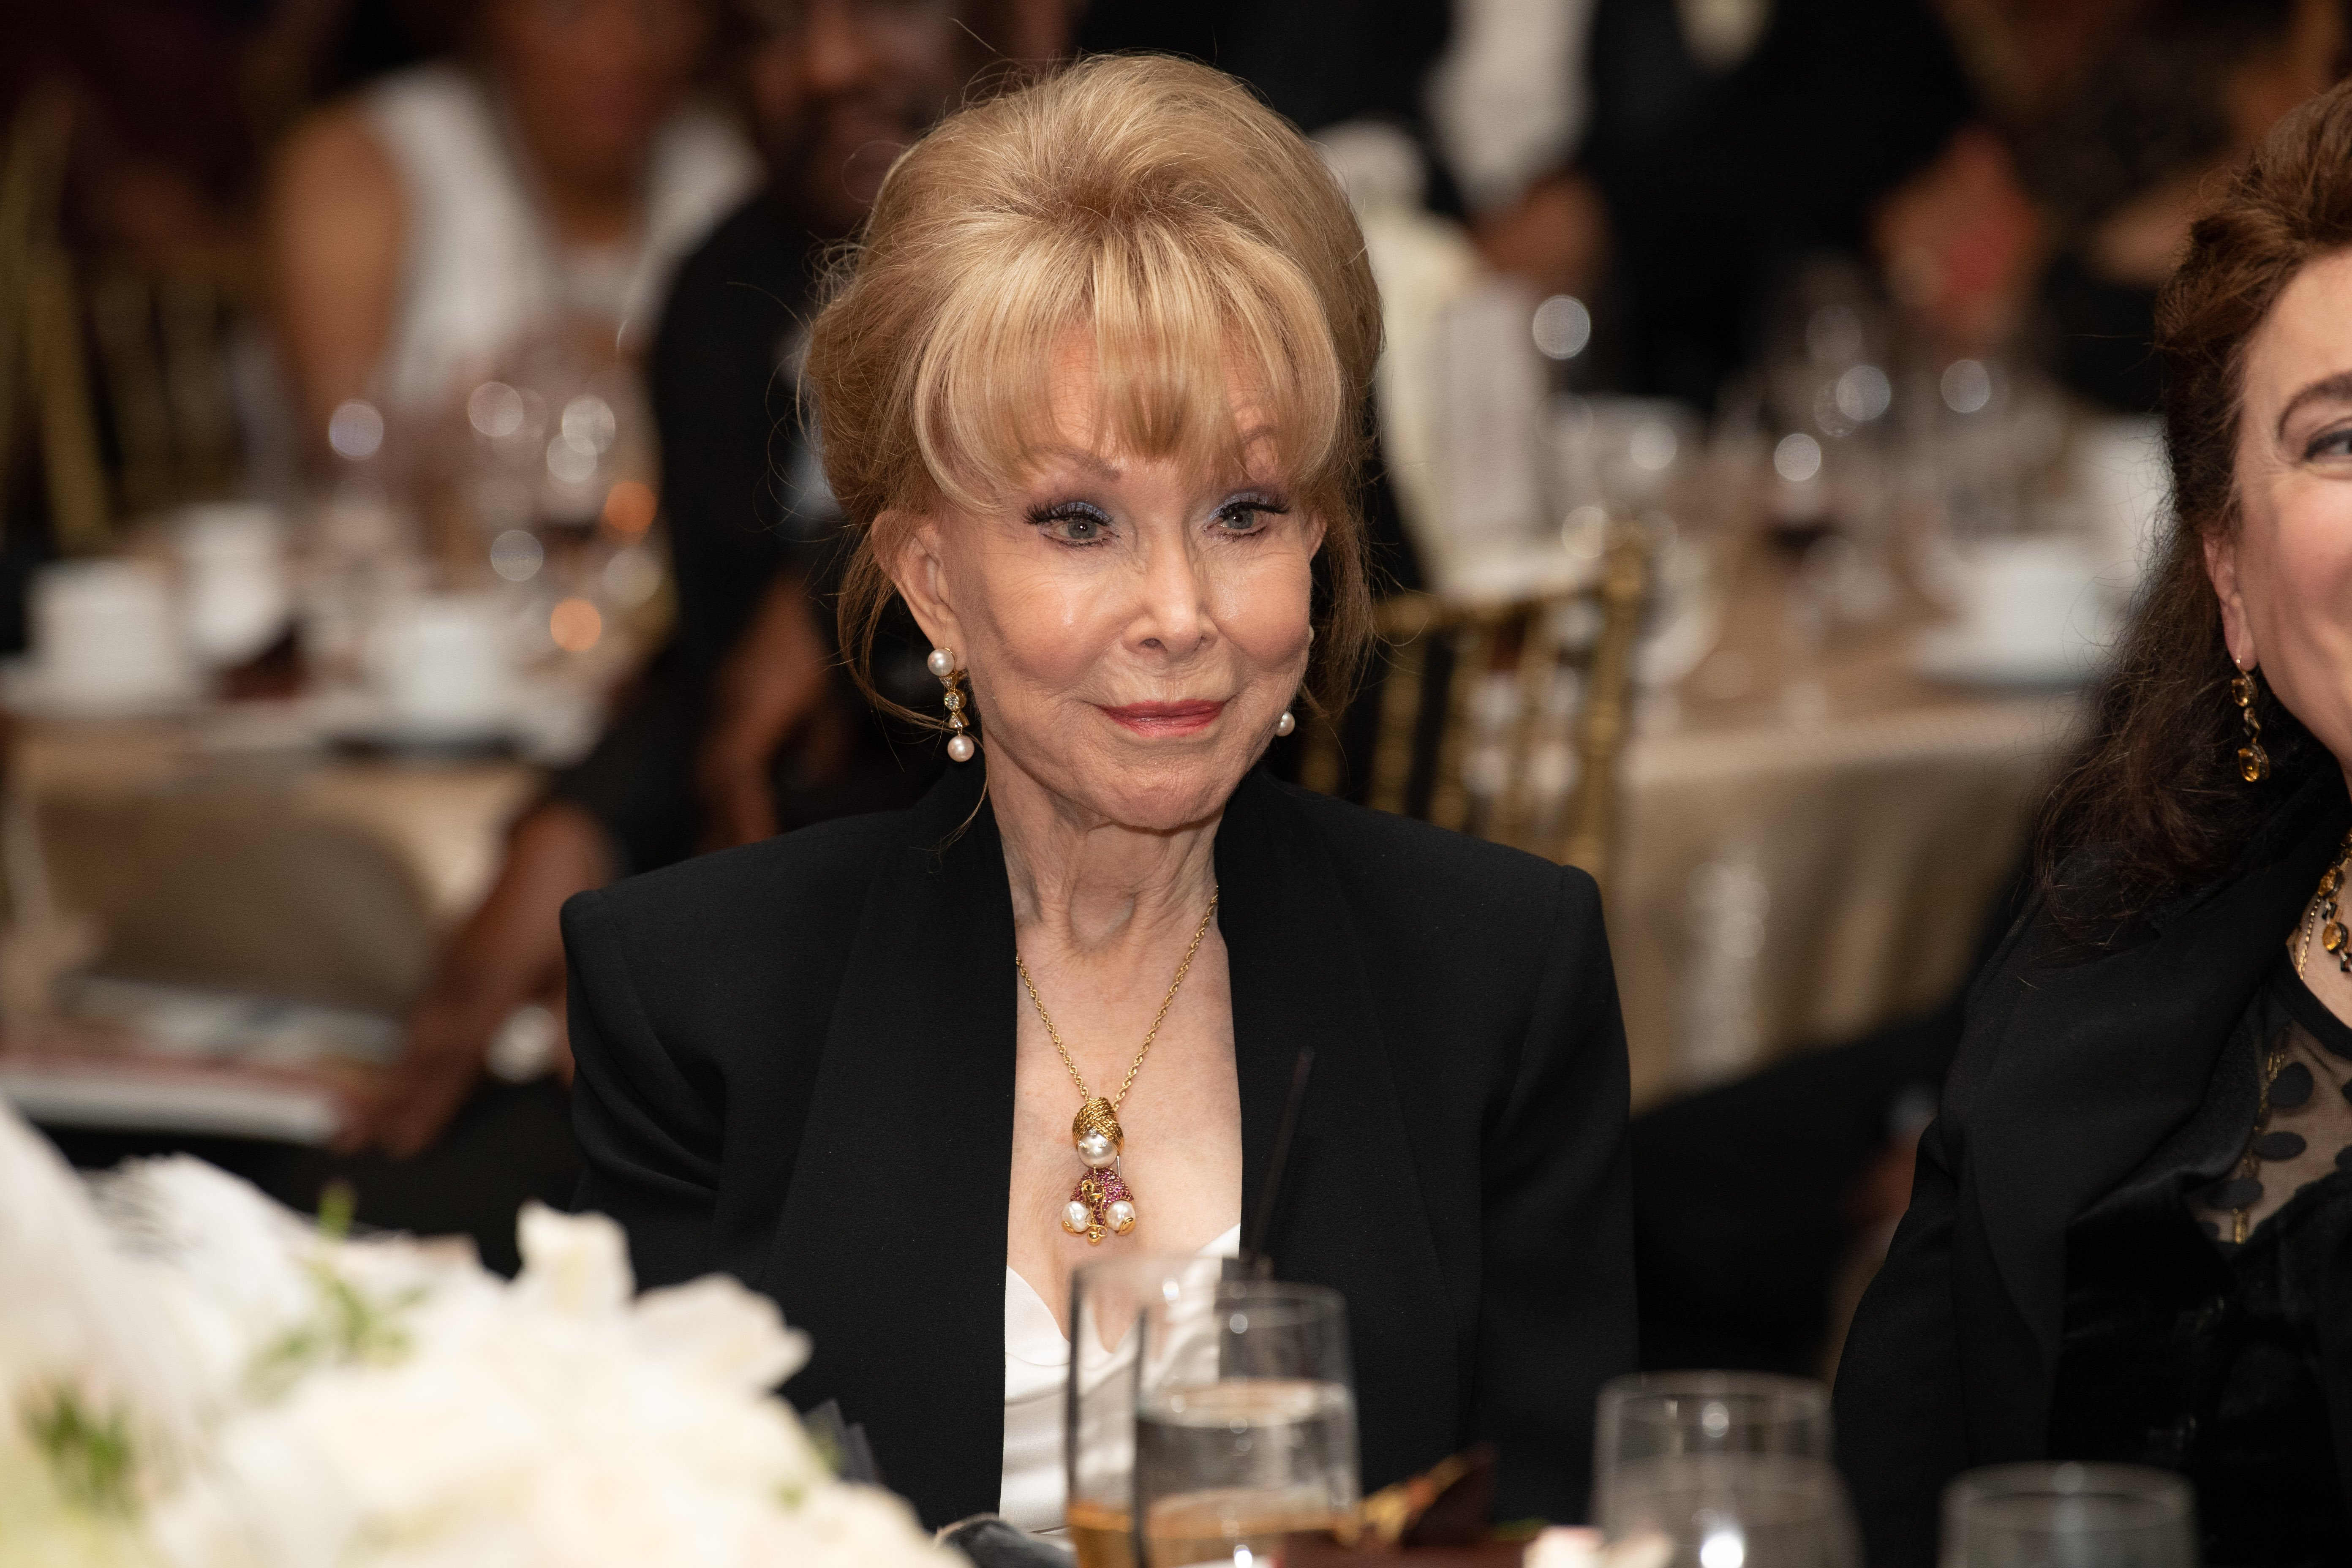 Barbara Eden attends the YWCA Greater Los Angeles 125th Anniversary Gala in Hollywood, California on November 1, 2018   Photo: Getty images